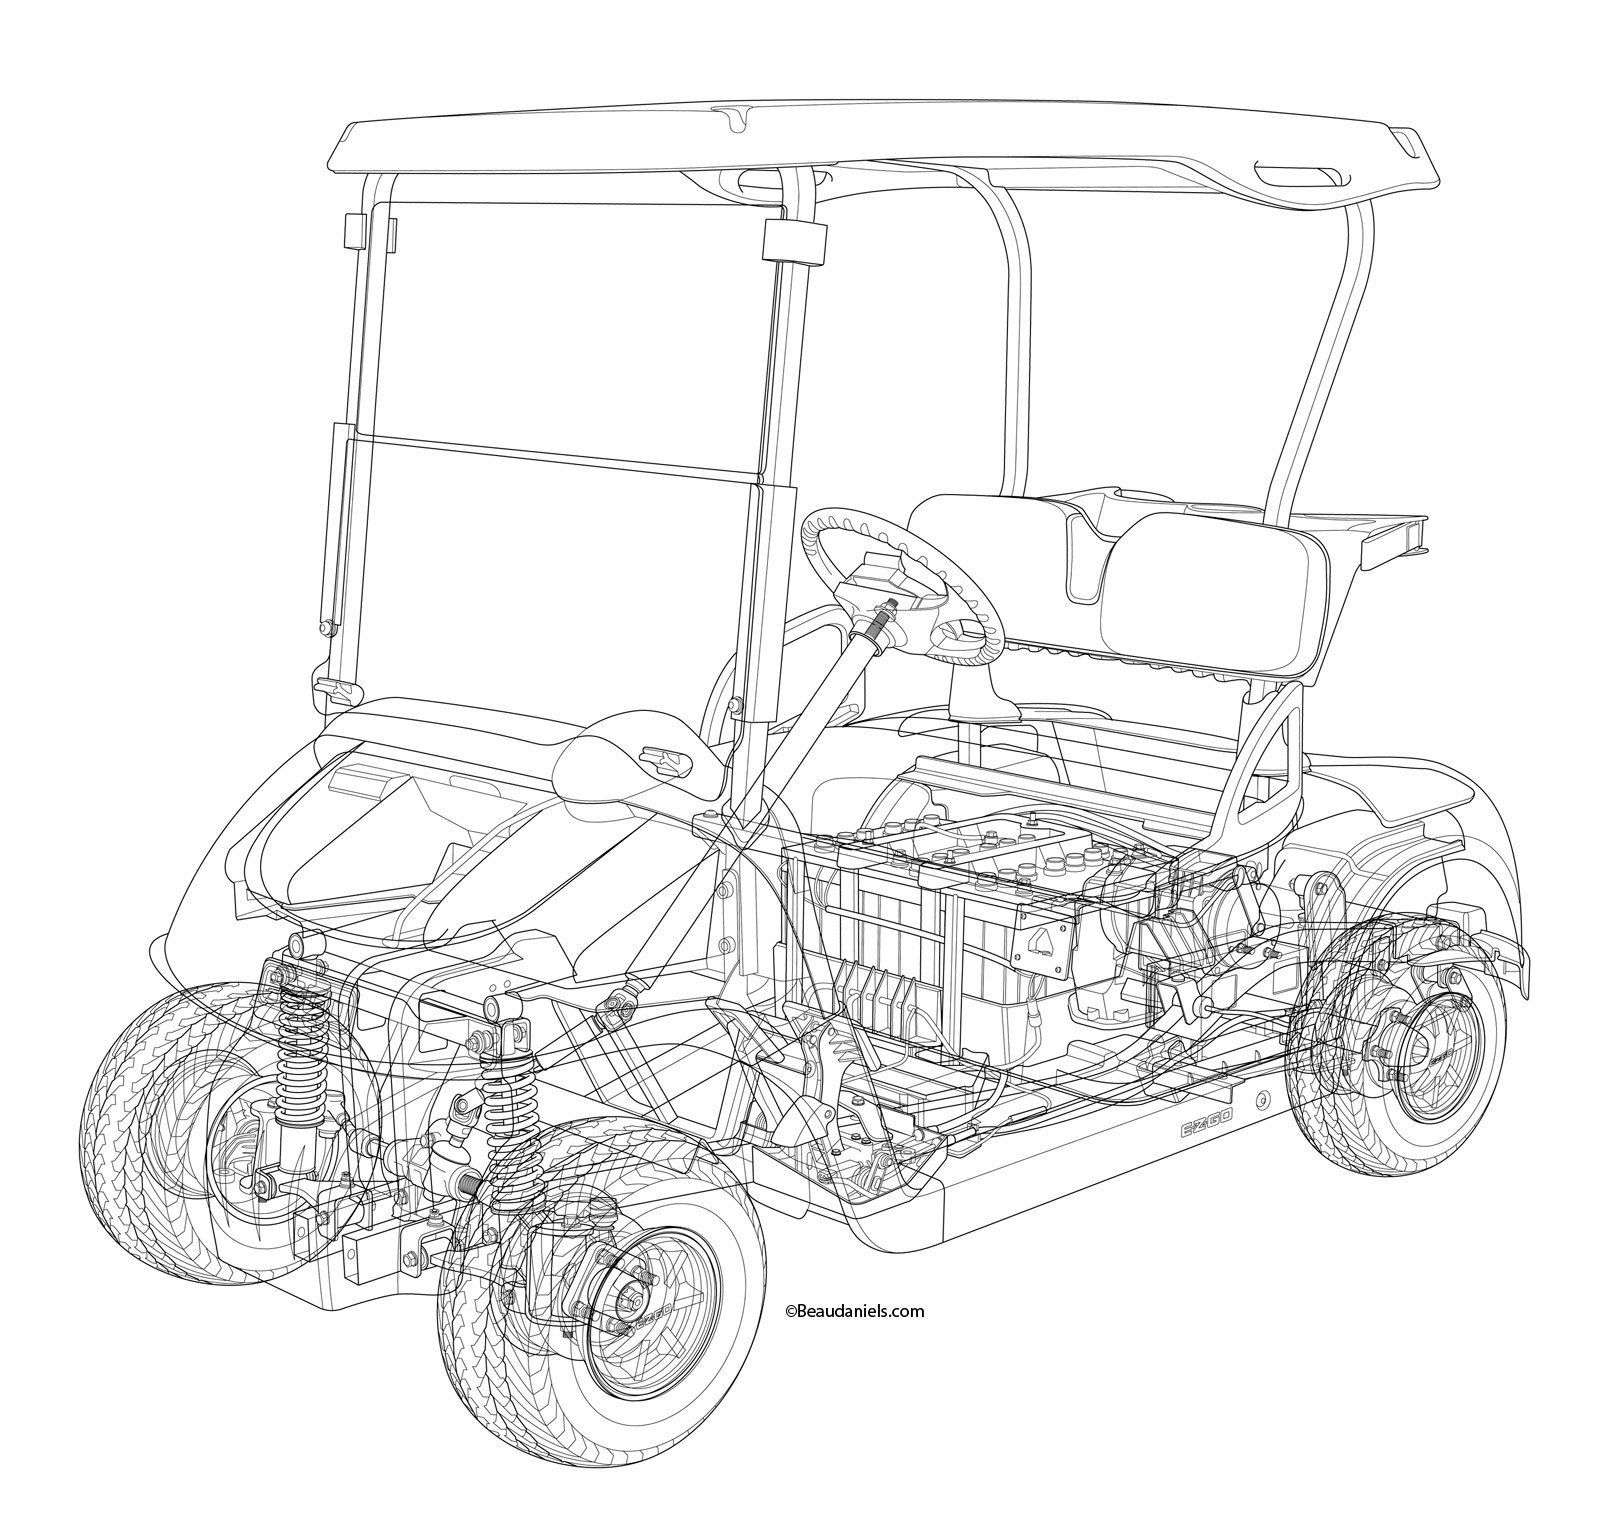 Technical illustration beau and alan daniels cutaway golf cart golf cart line art the line art that we made in illustrator so that malvernweather Image collections